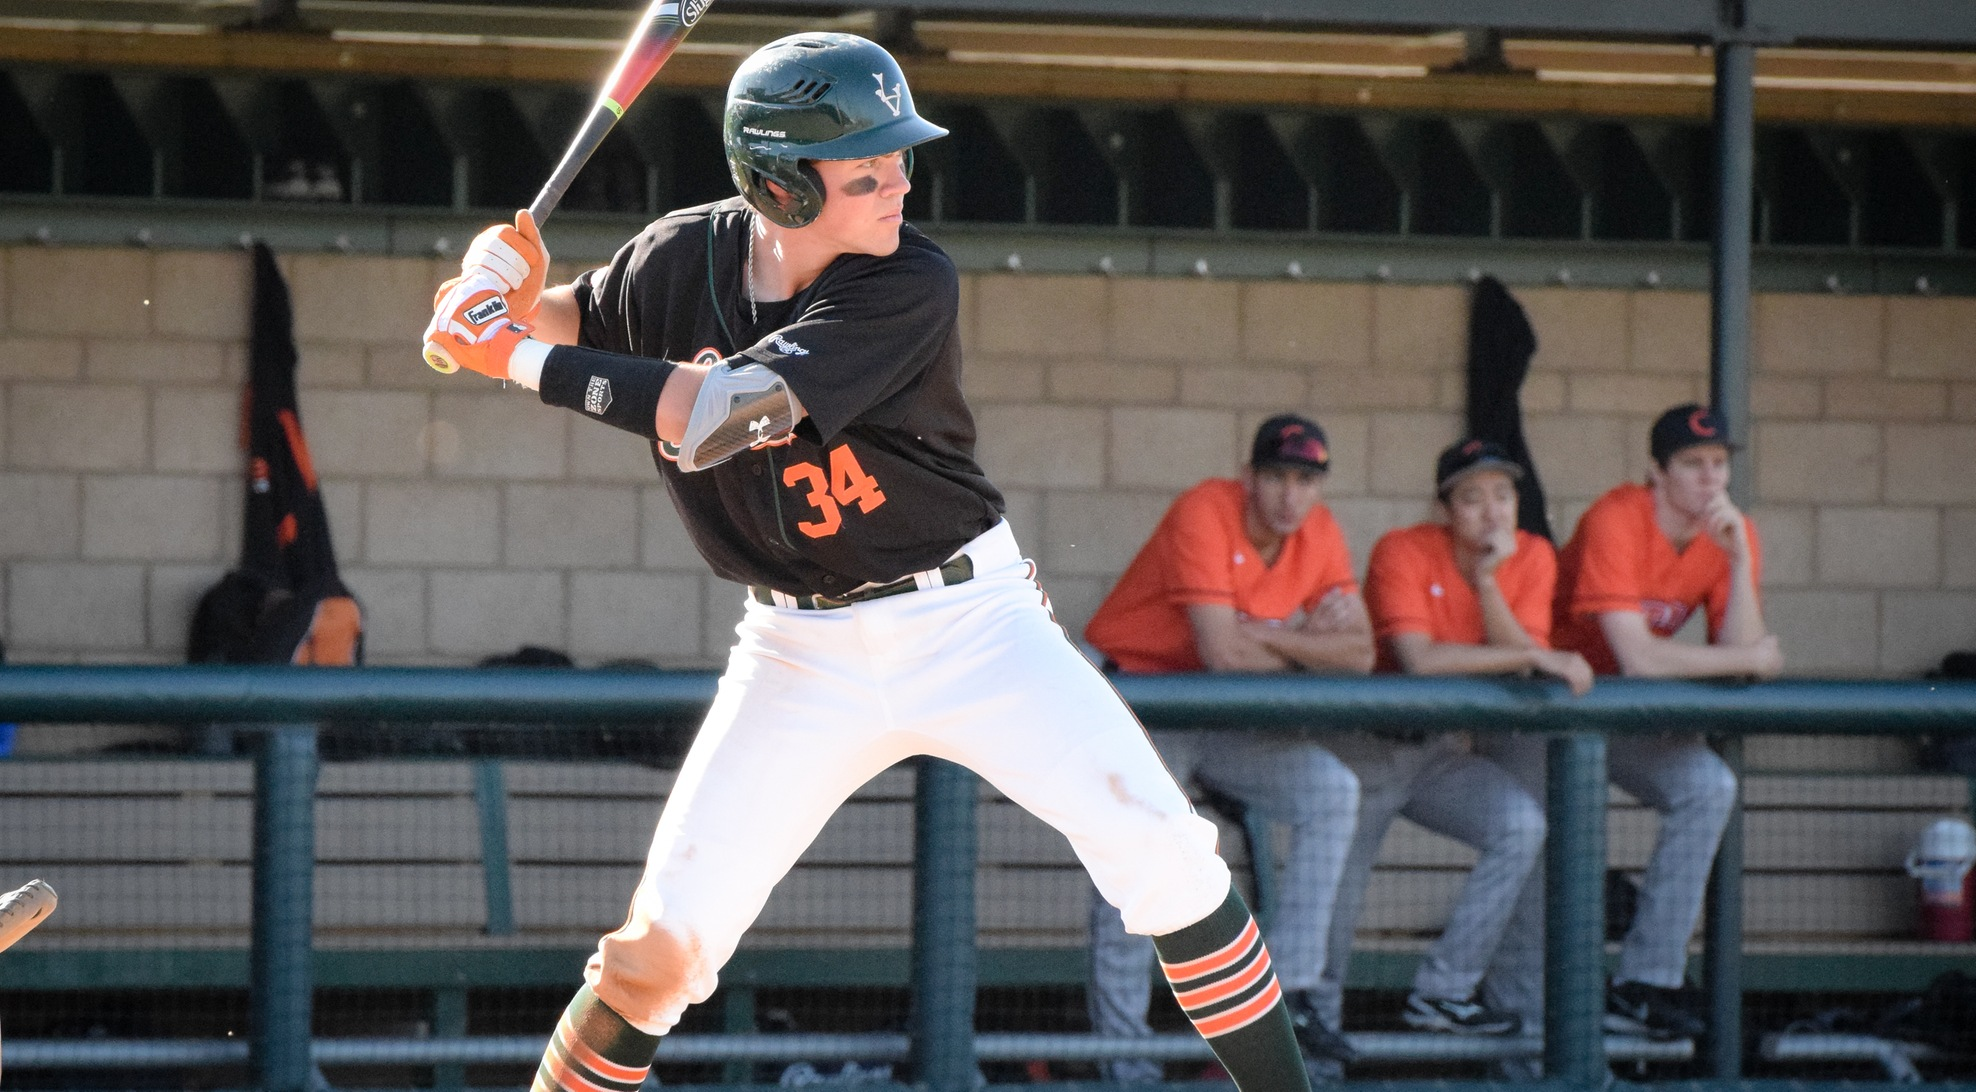 La Verne battles back, but falls to Redlands, 6-4